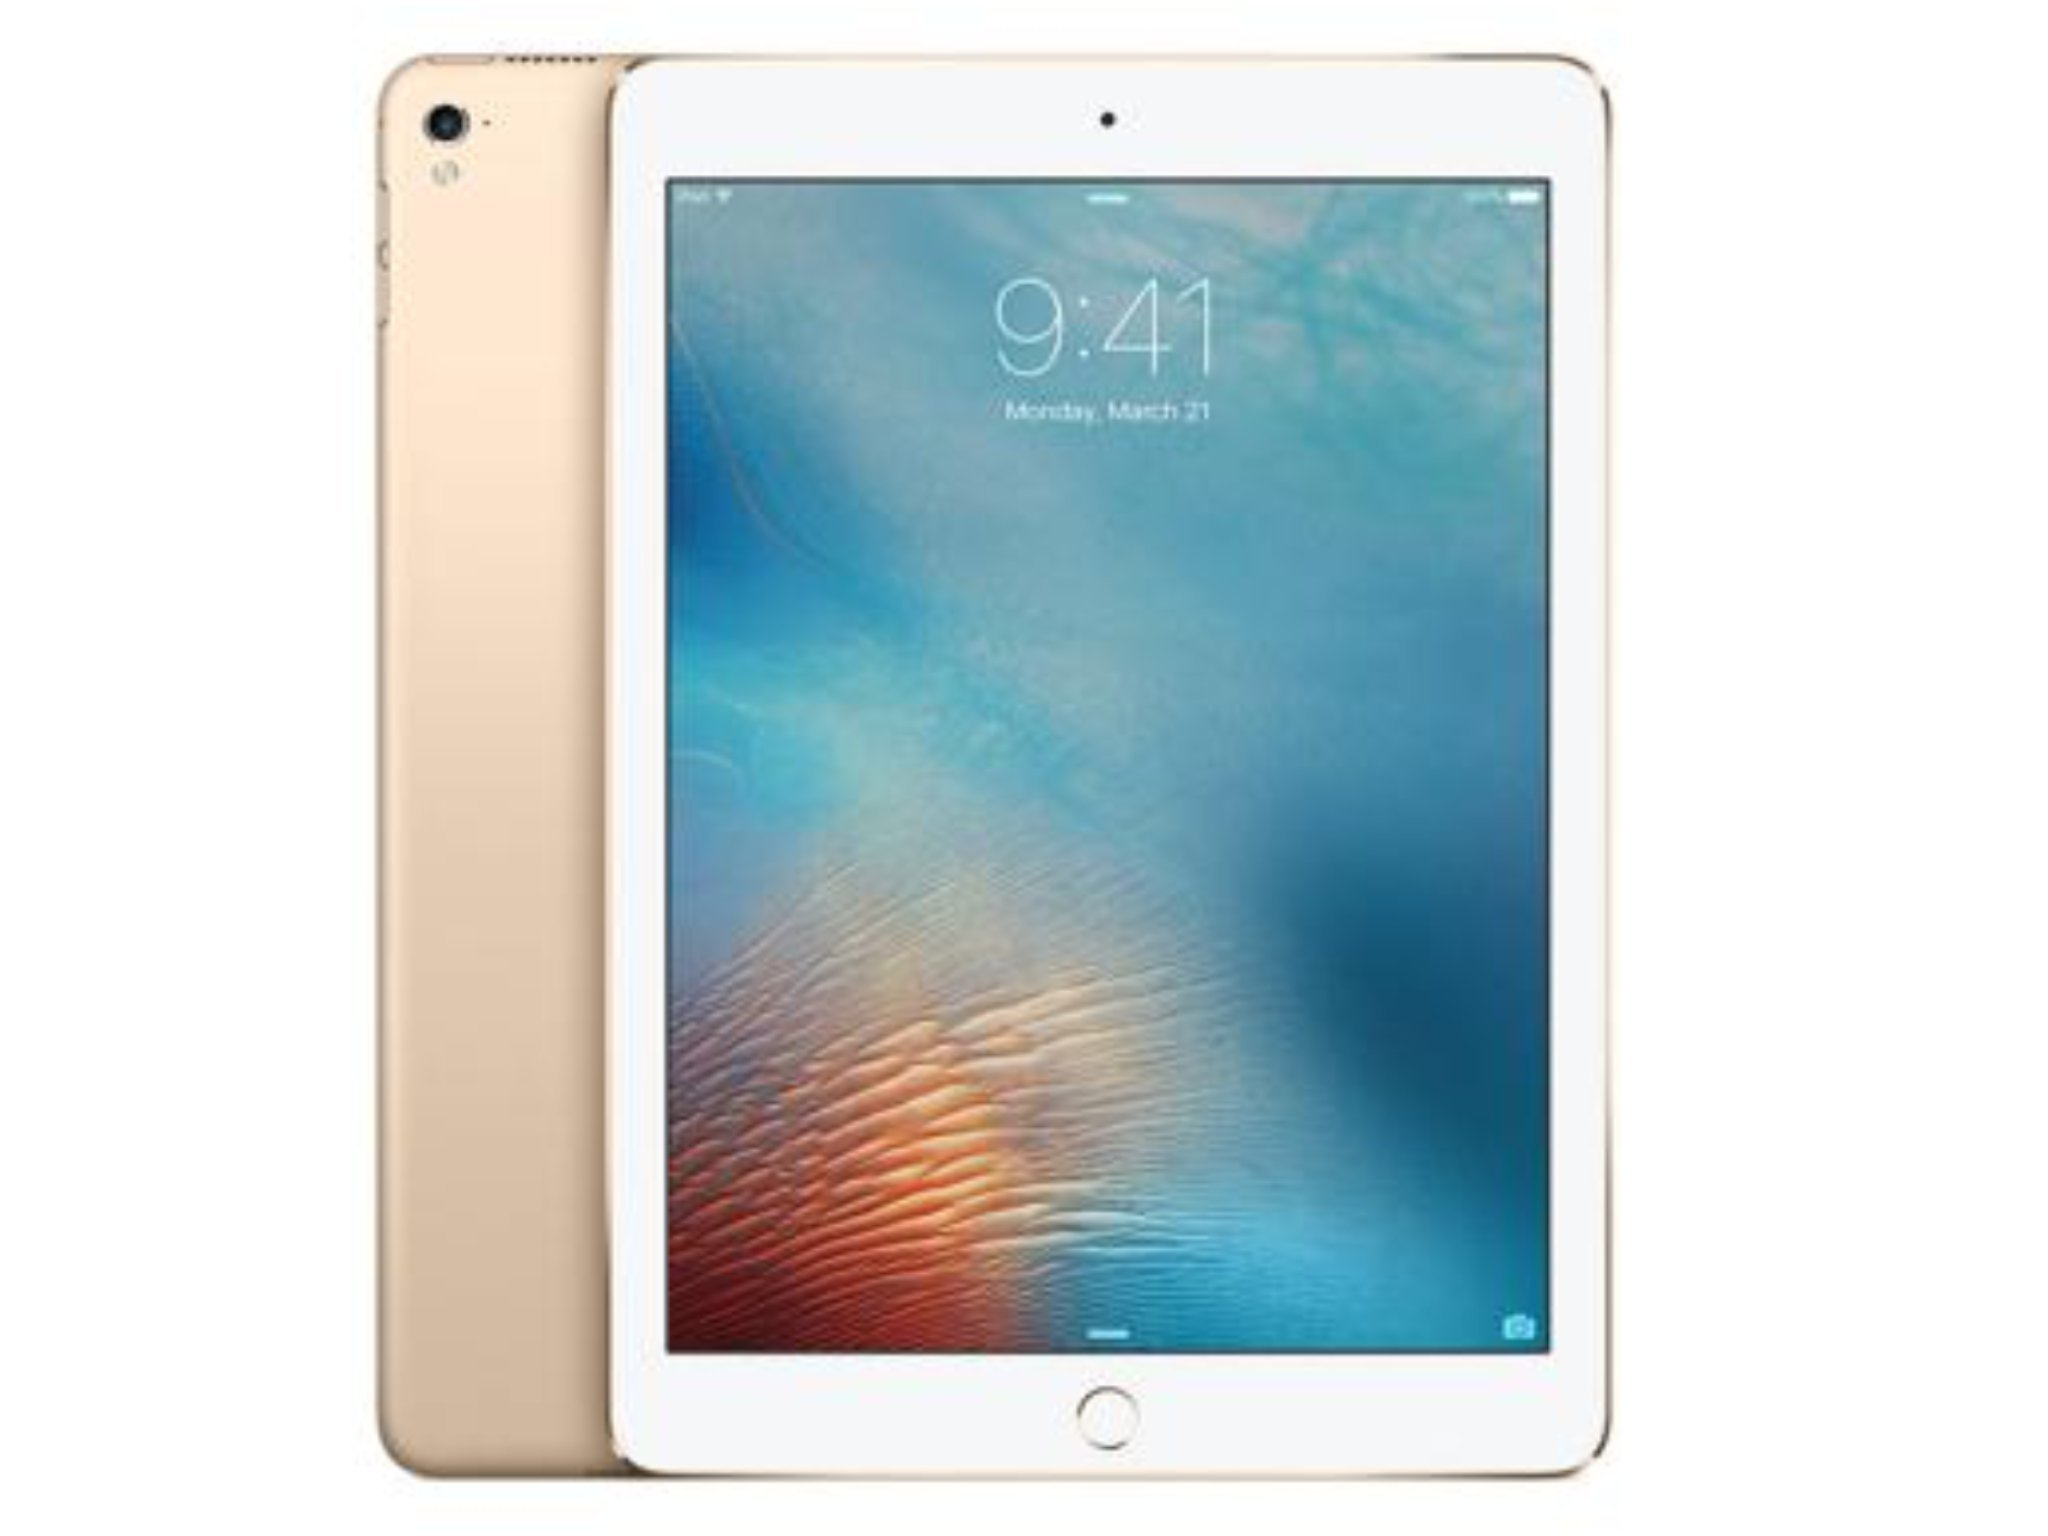 Apple iPad 5th Gen 2017 9.7'' 32GB Gold (Unlocked)